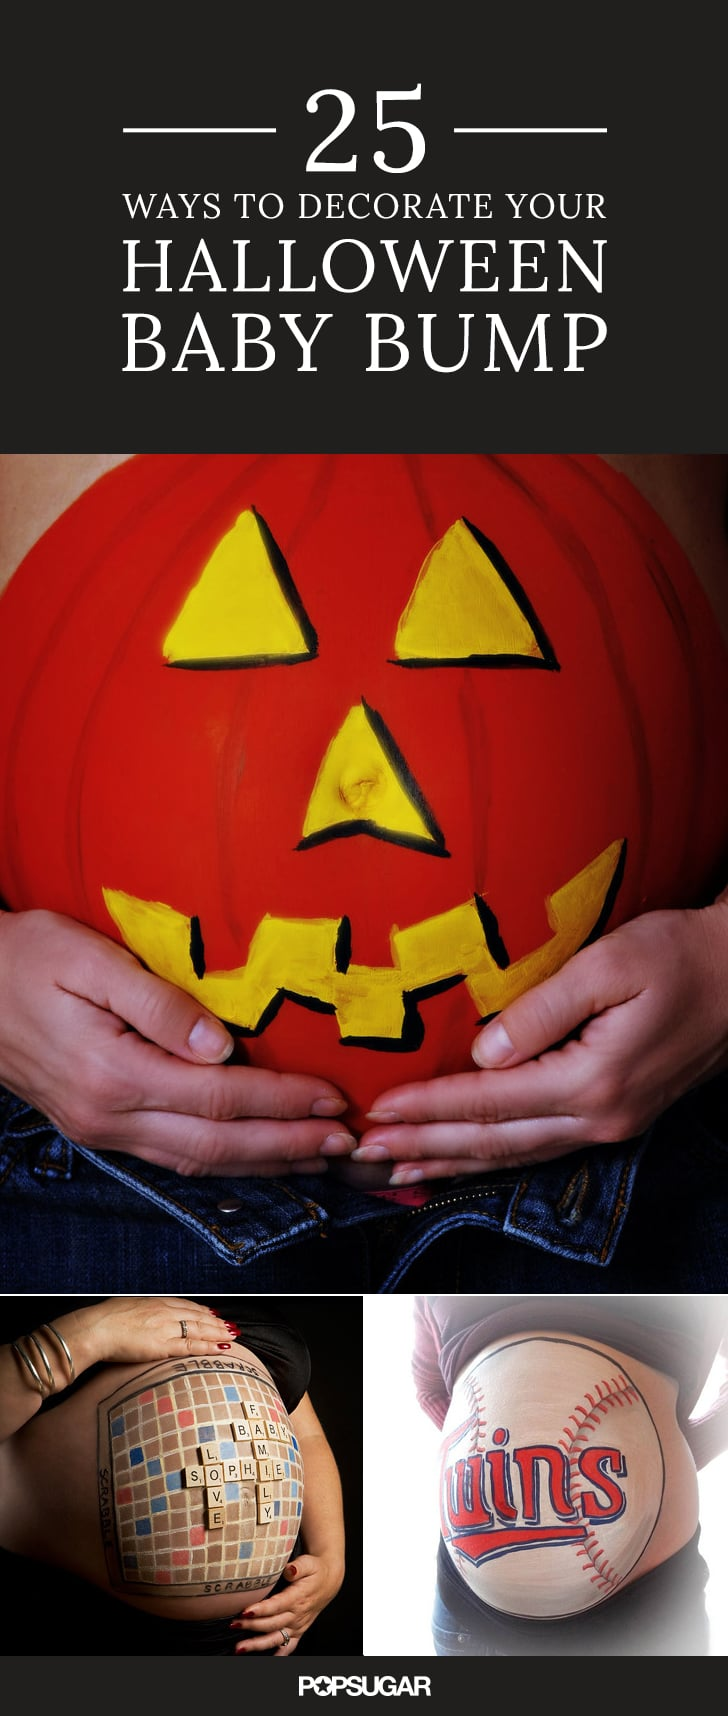 Give Your Bump a Halloween Makeover